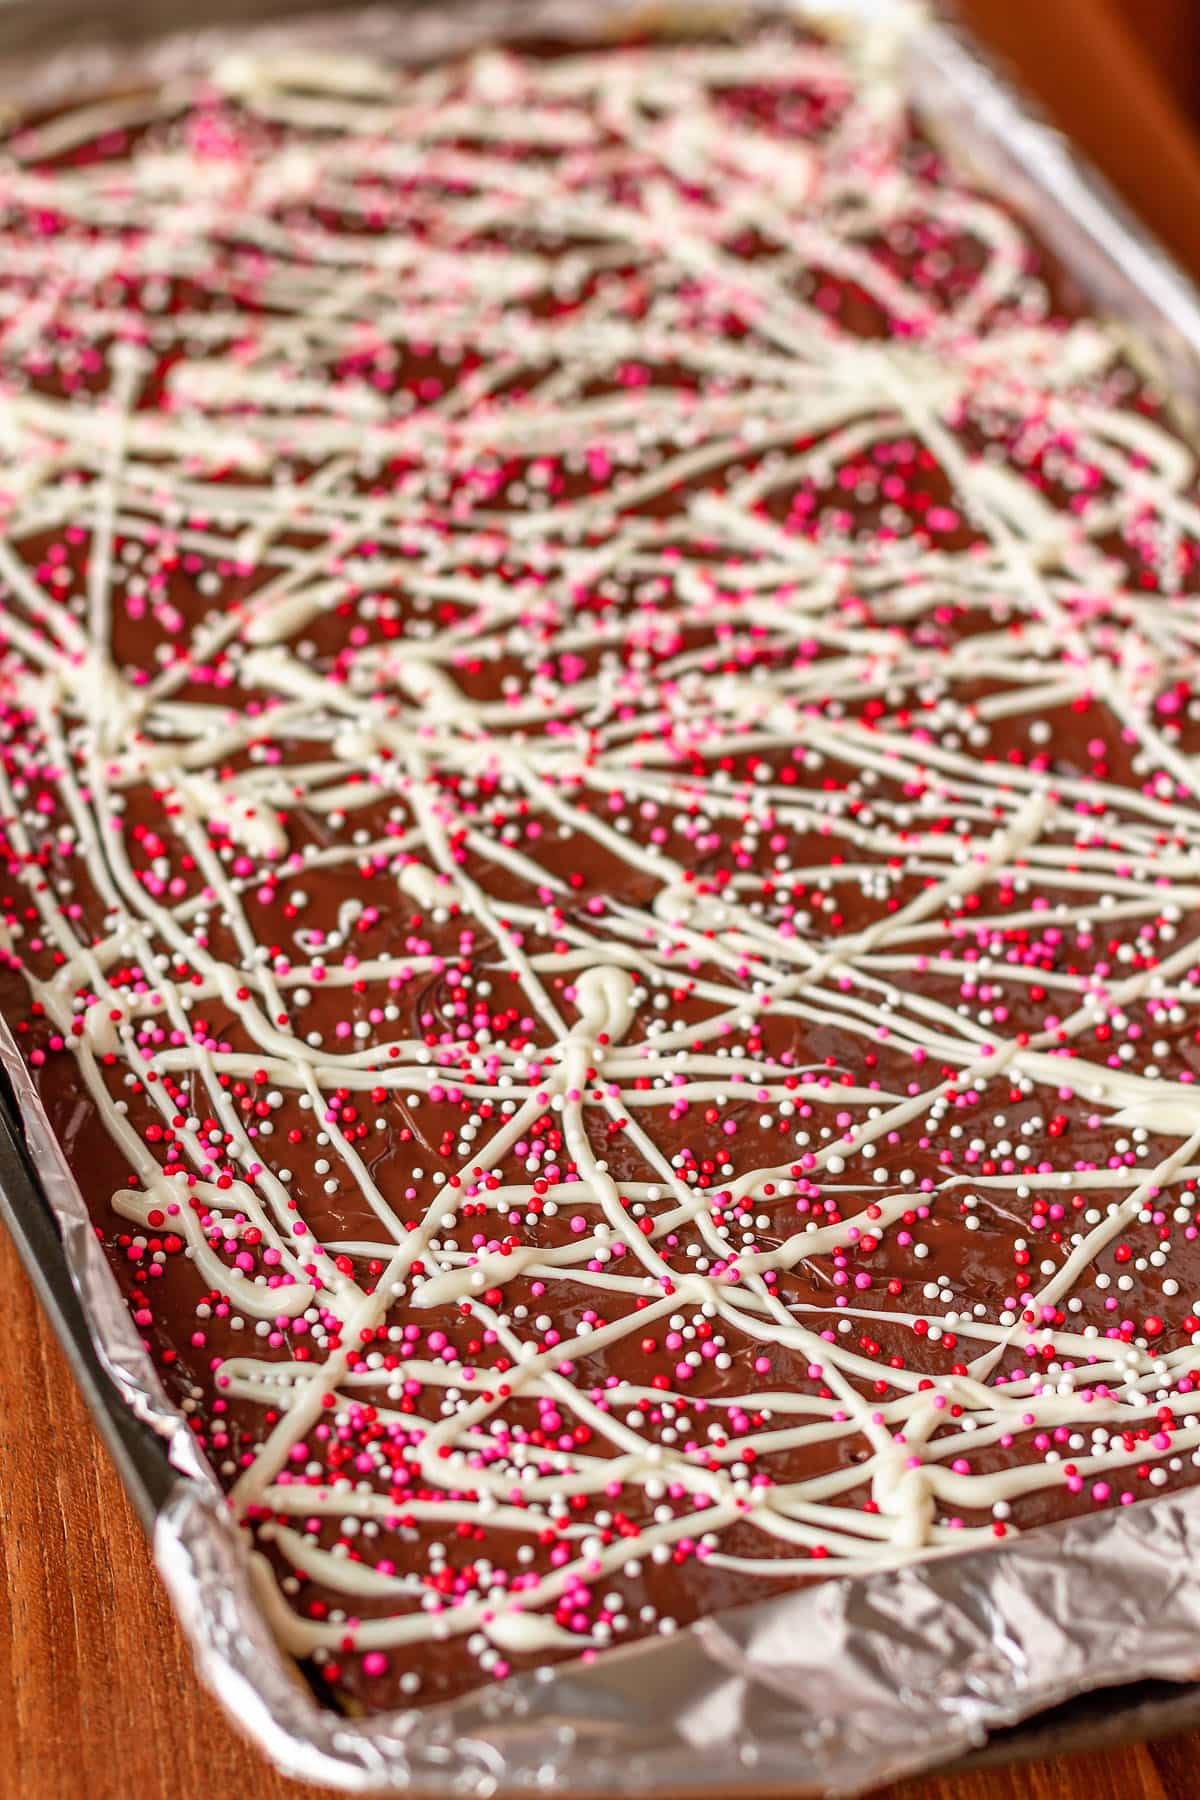 saltine cracker crack recipe on a baking sheet with sprinkles on top